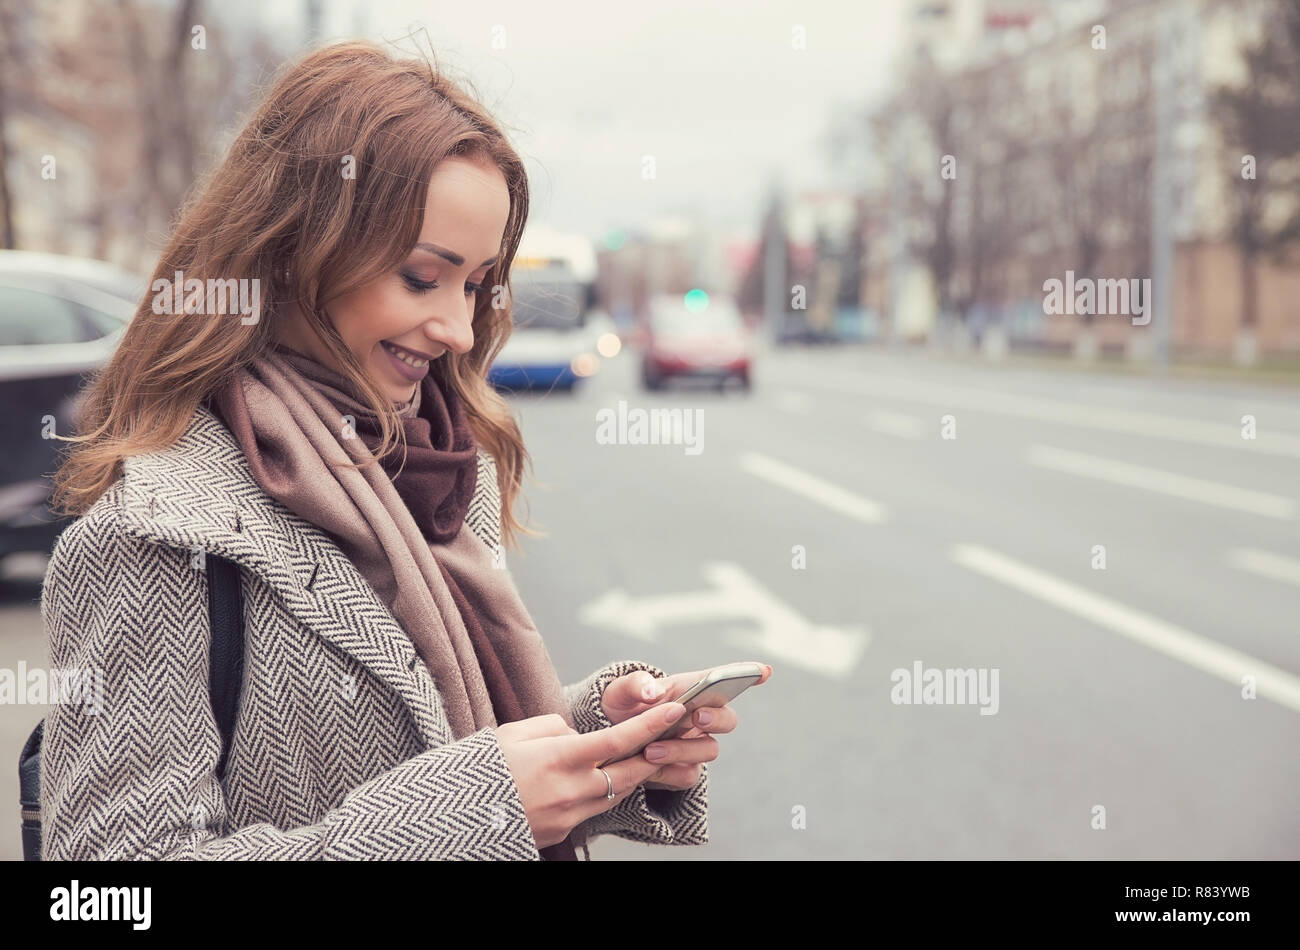 Smiling casual woman checking email via mobile phone waiting